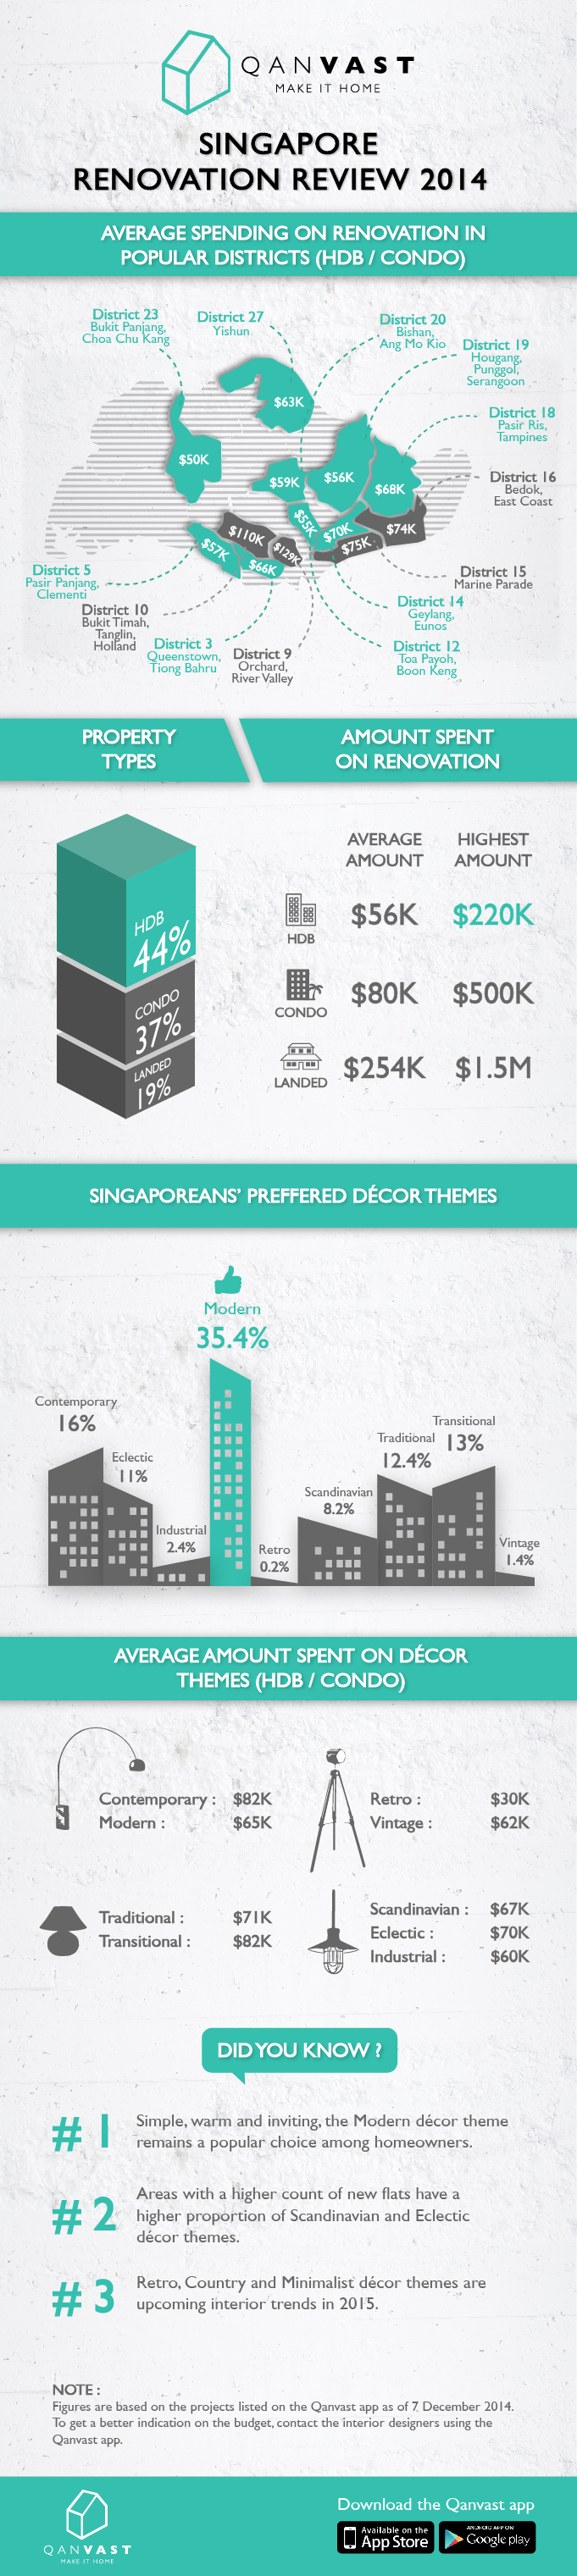 how much Singaporeans spend on renovation